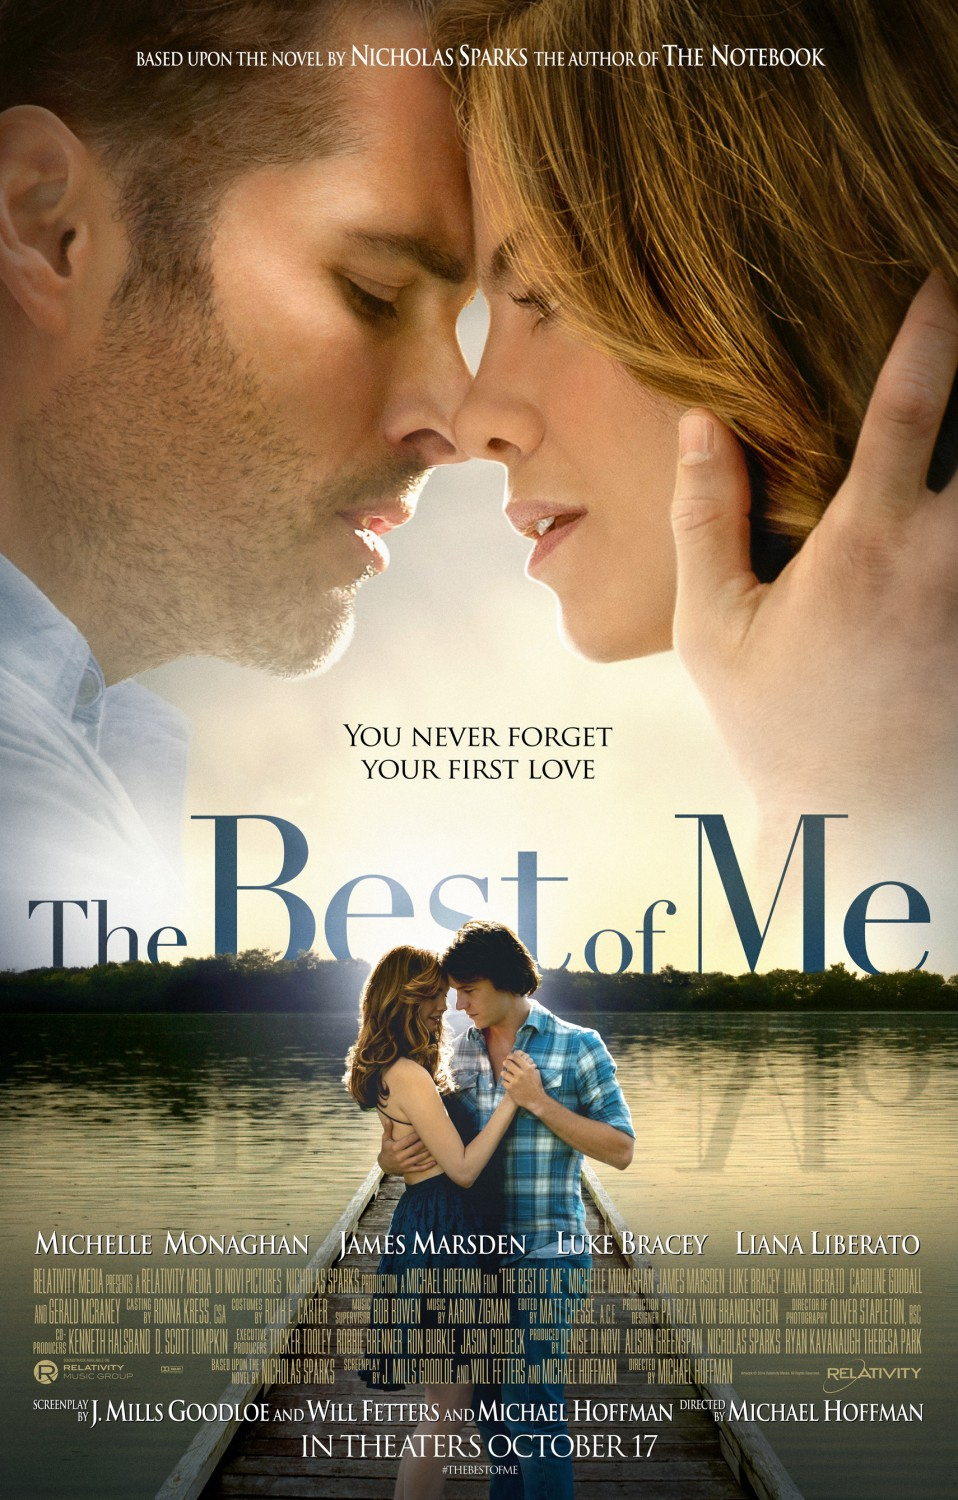 The Best of Me Review